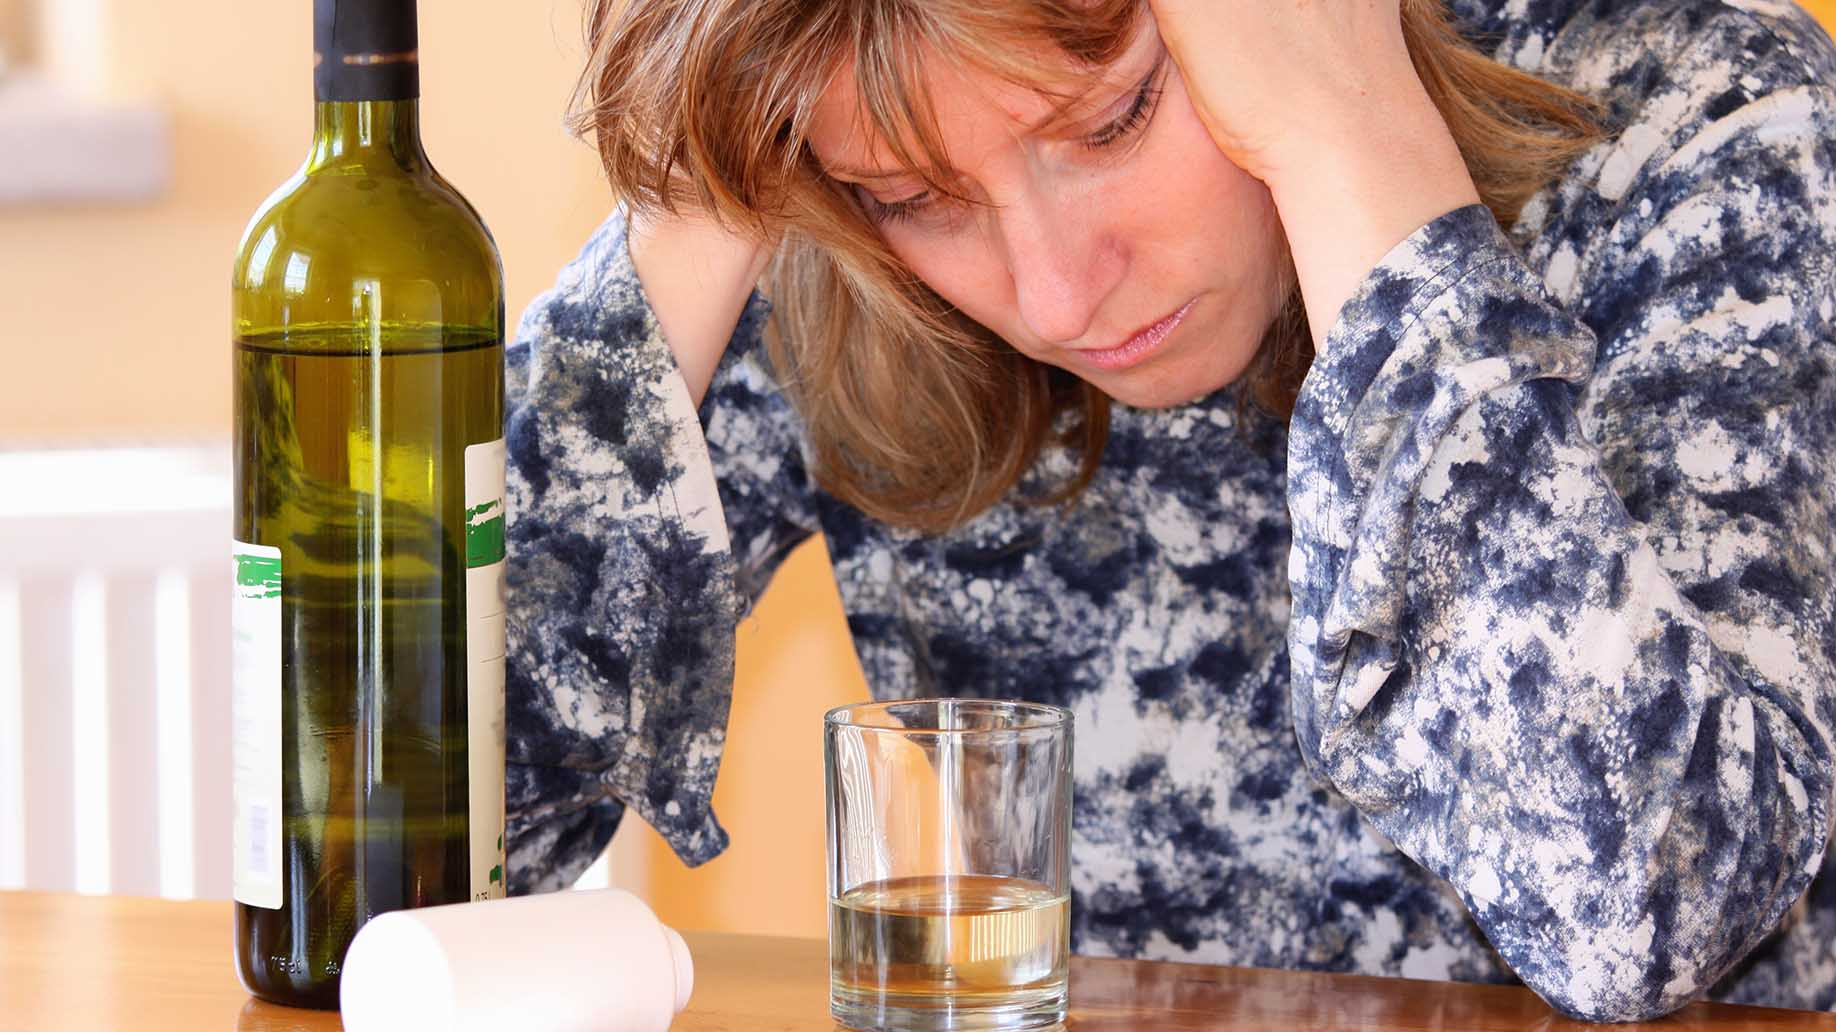 woman used alcohol to mask fellings of depression